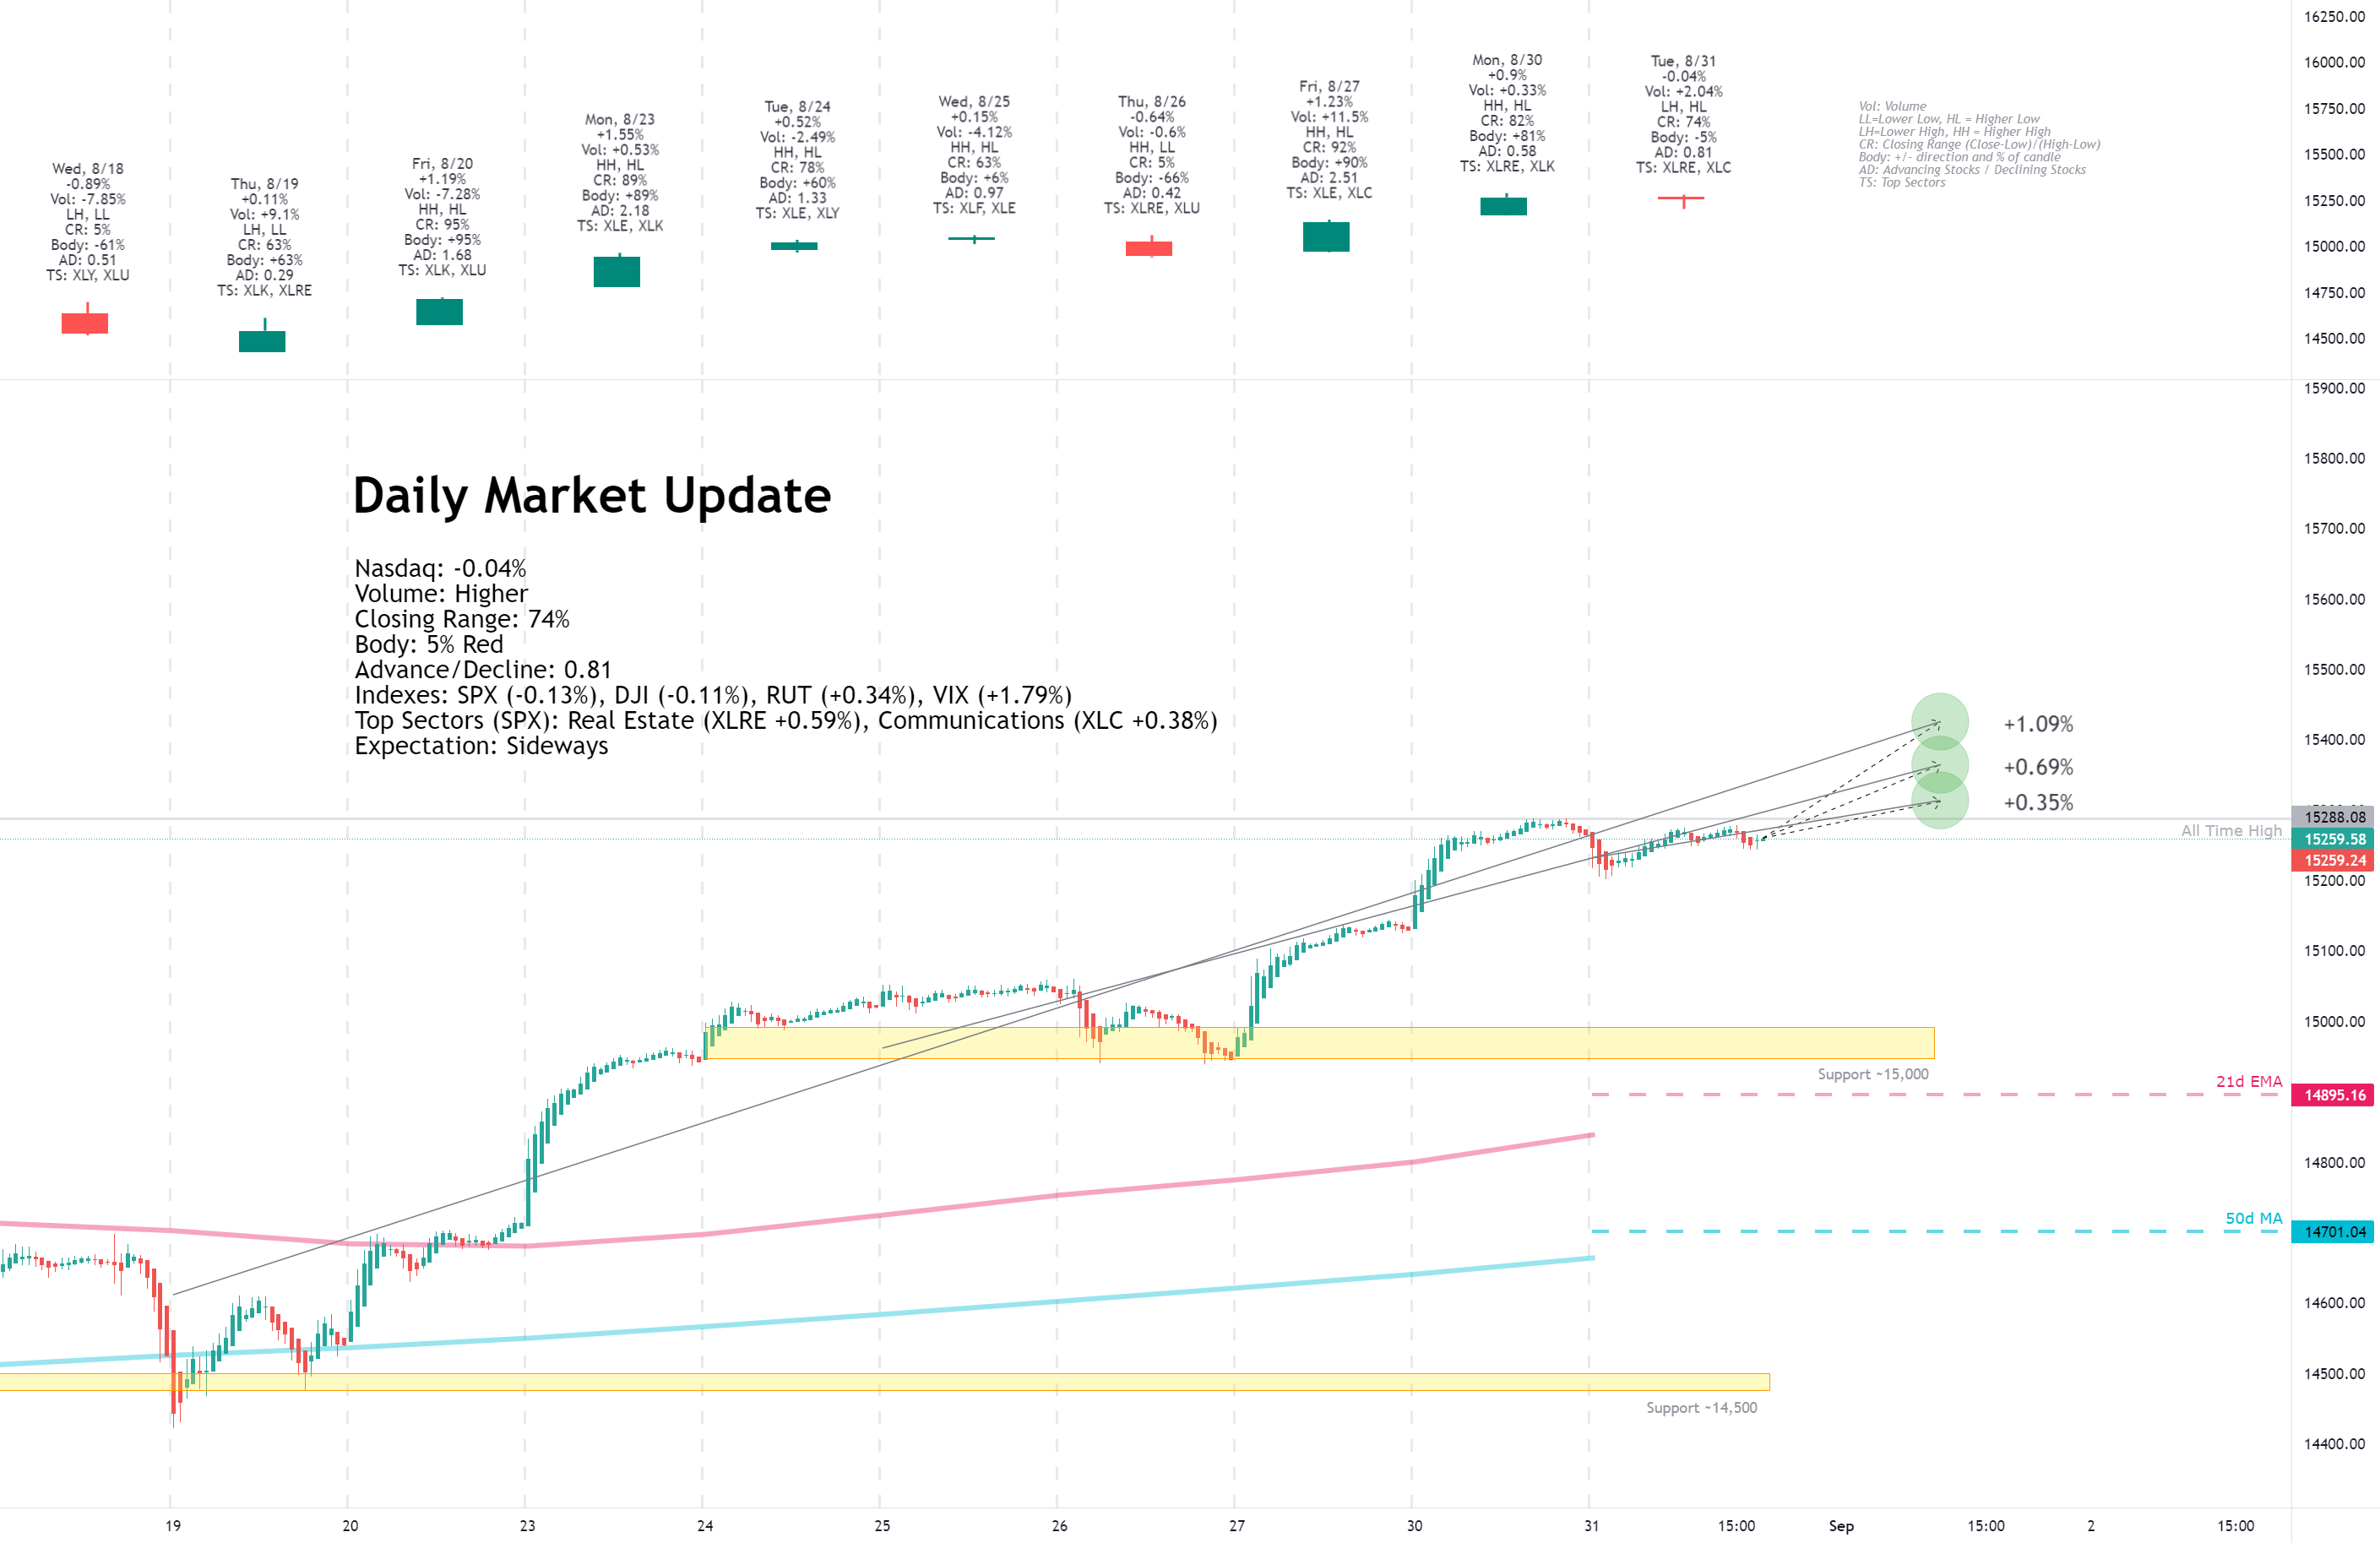 Daily Market Update for 8/31